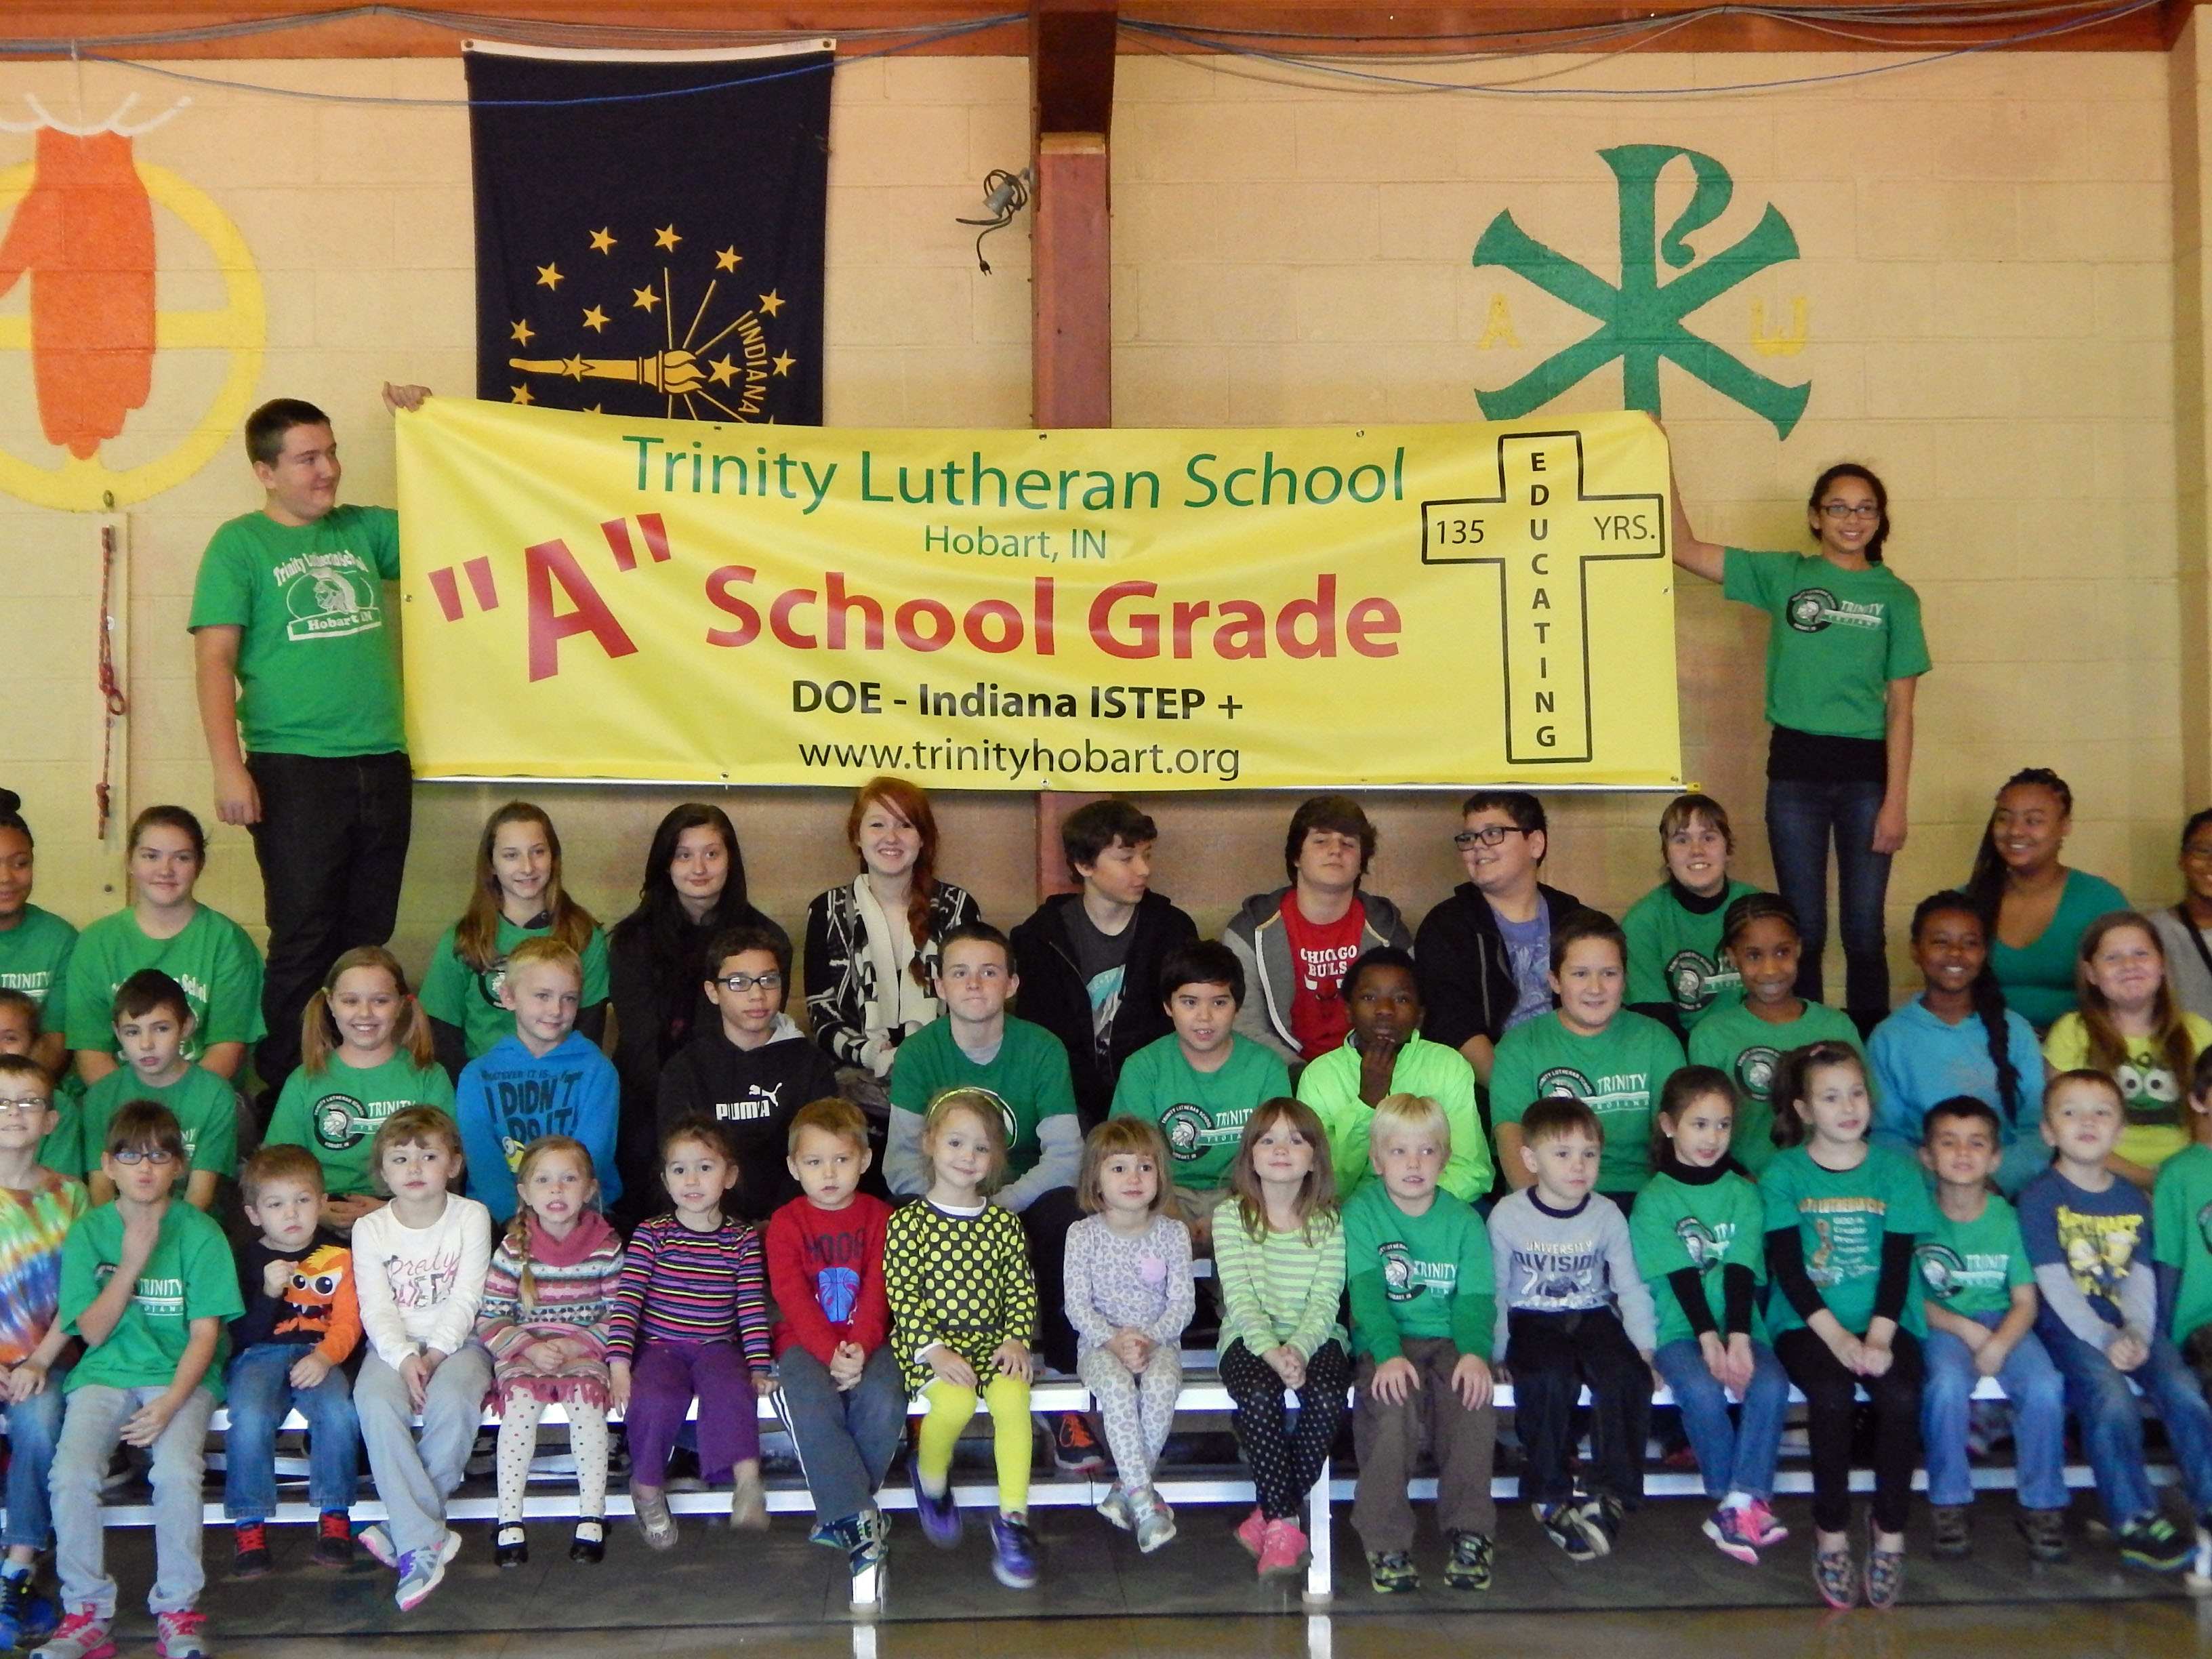 Trinity Lutheran School to Host Open House on Tuesday, February 24. 2015